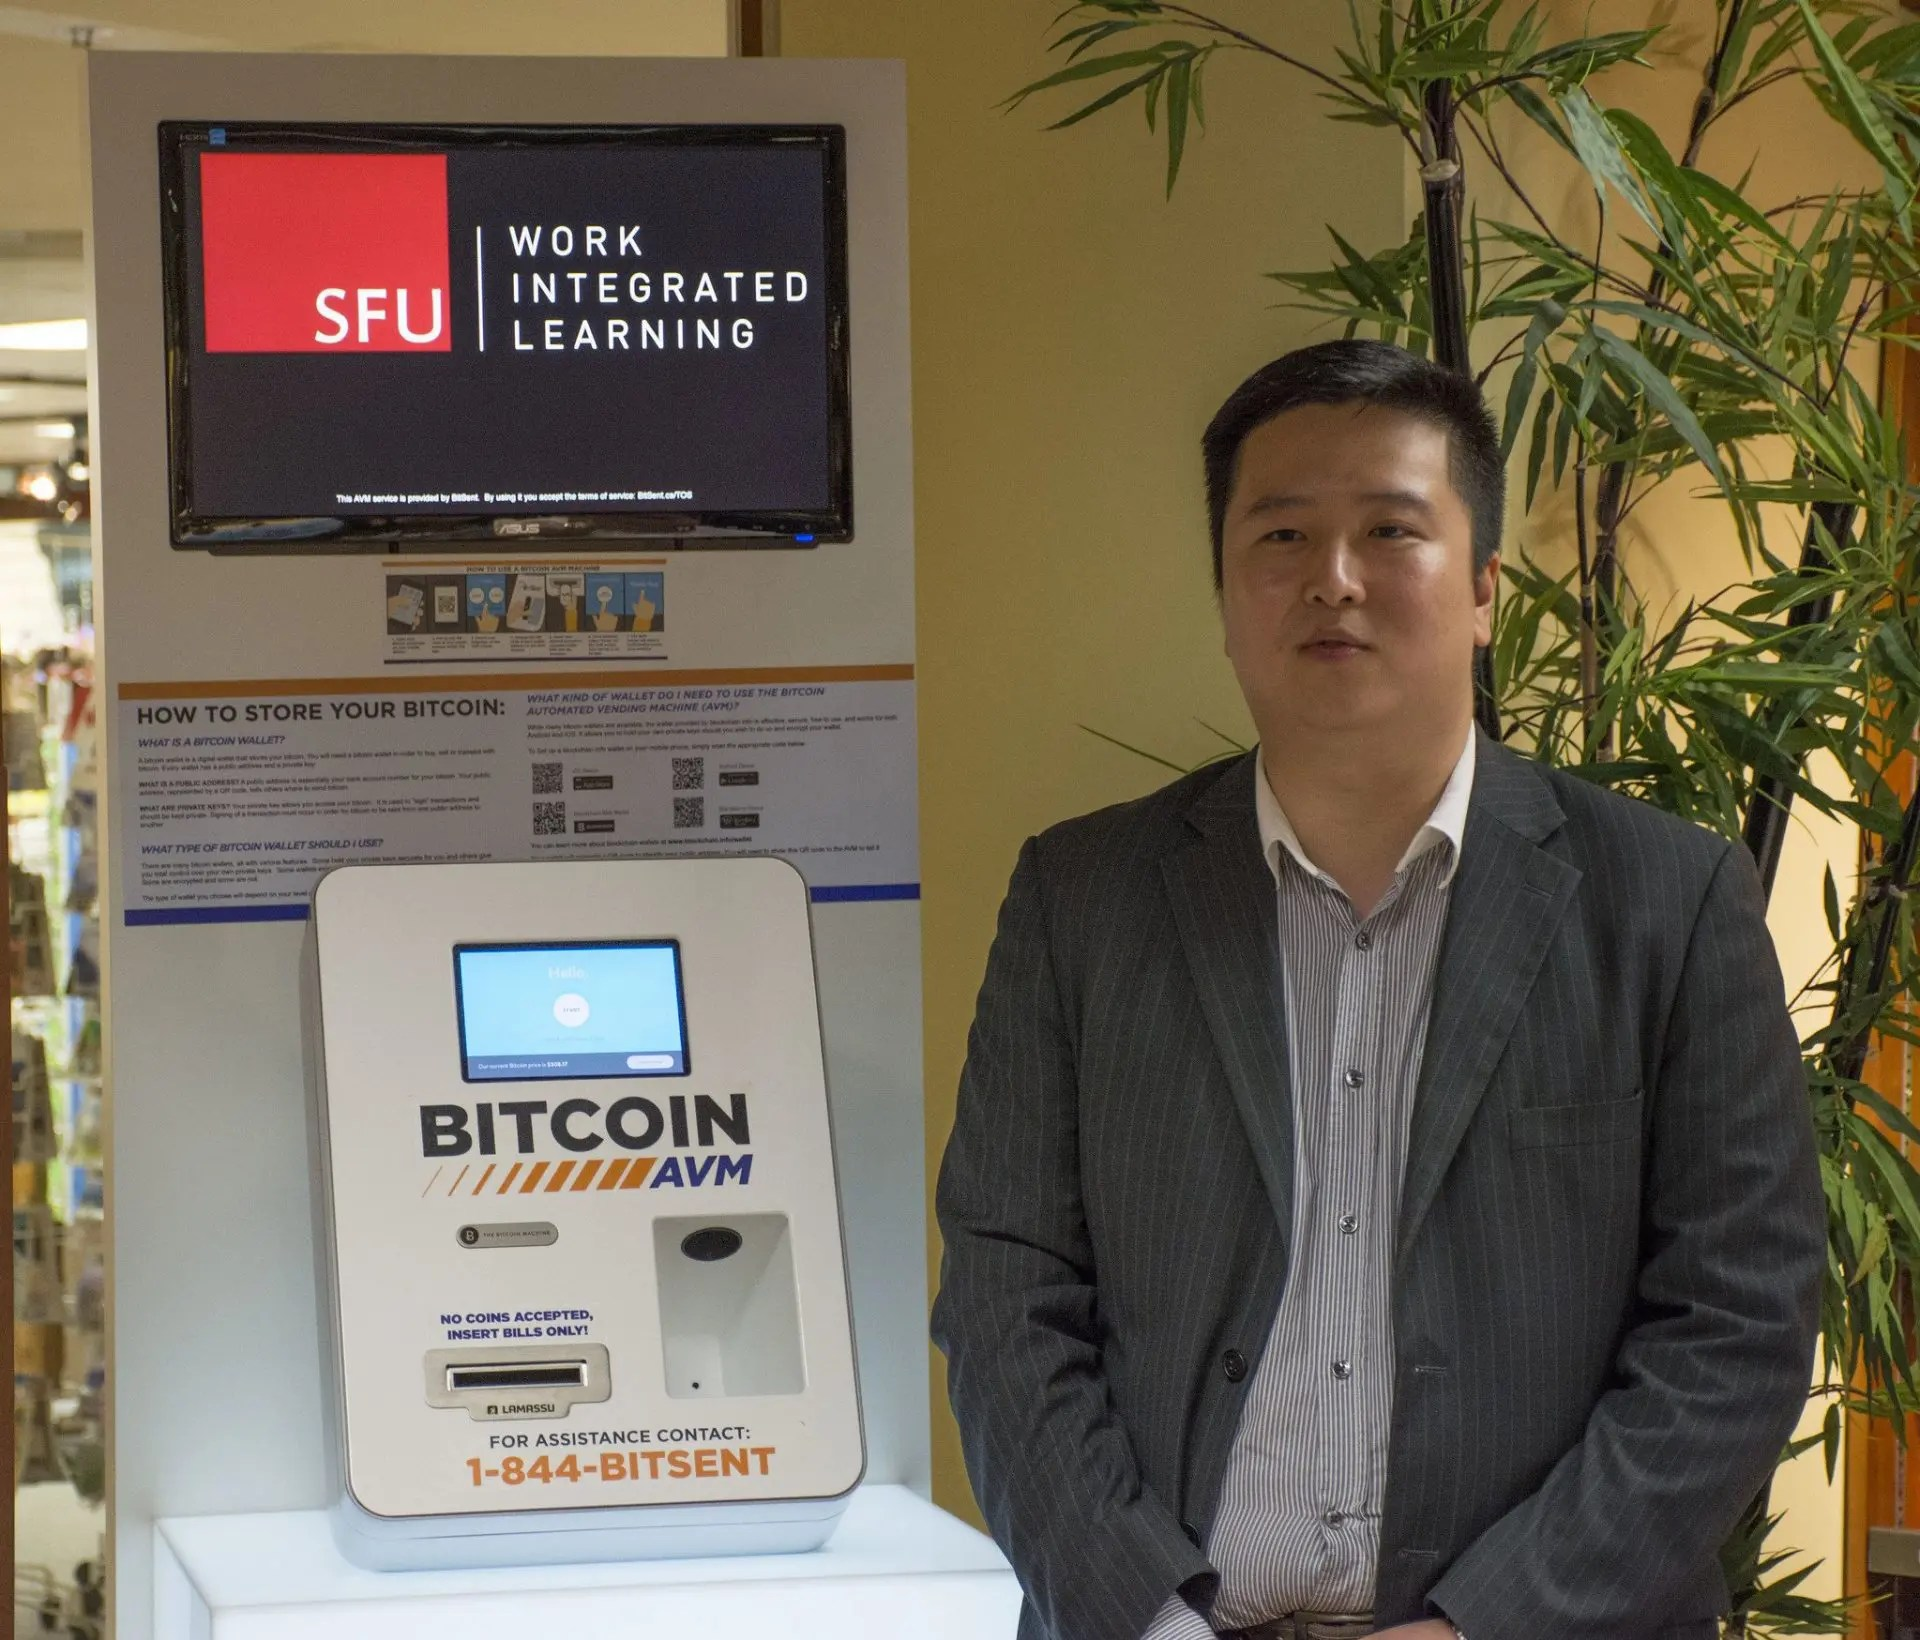 Michael Yeung, Founder and President of the Simon Fraser Bitcoin Club